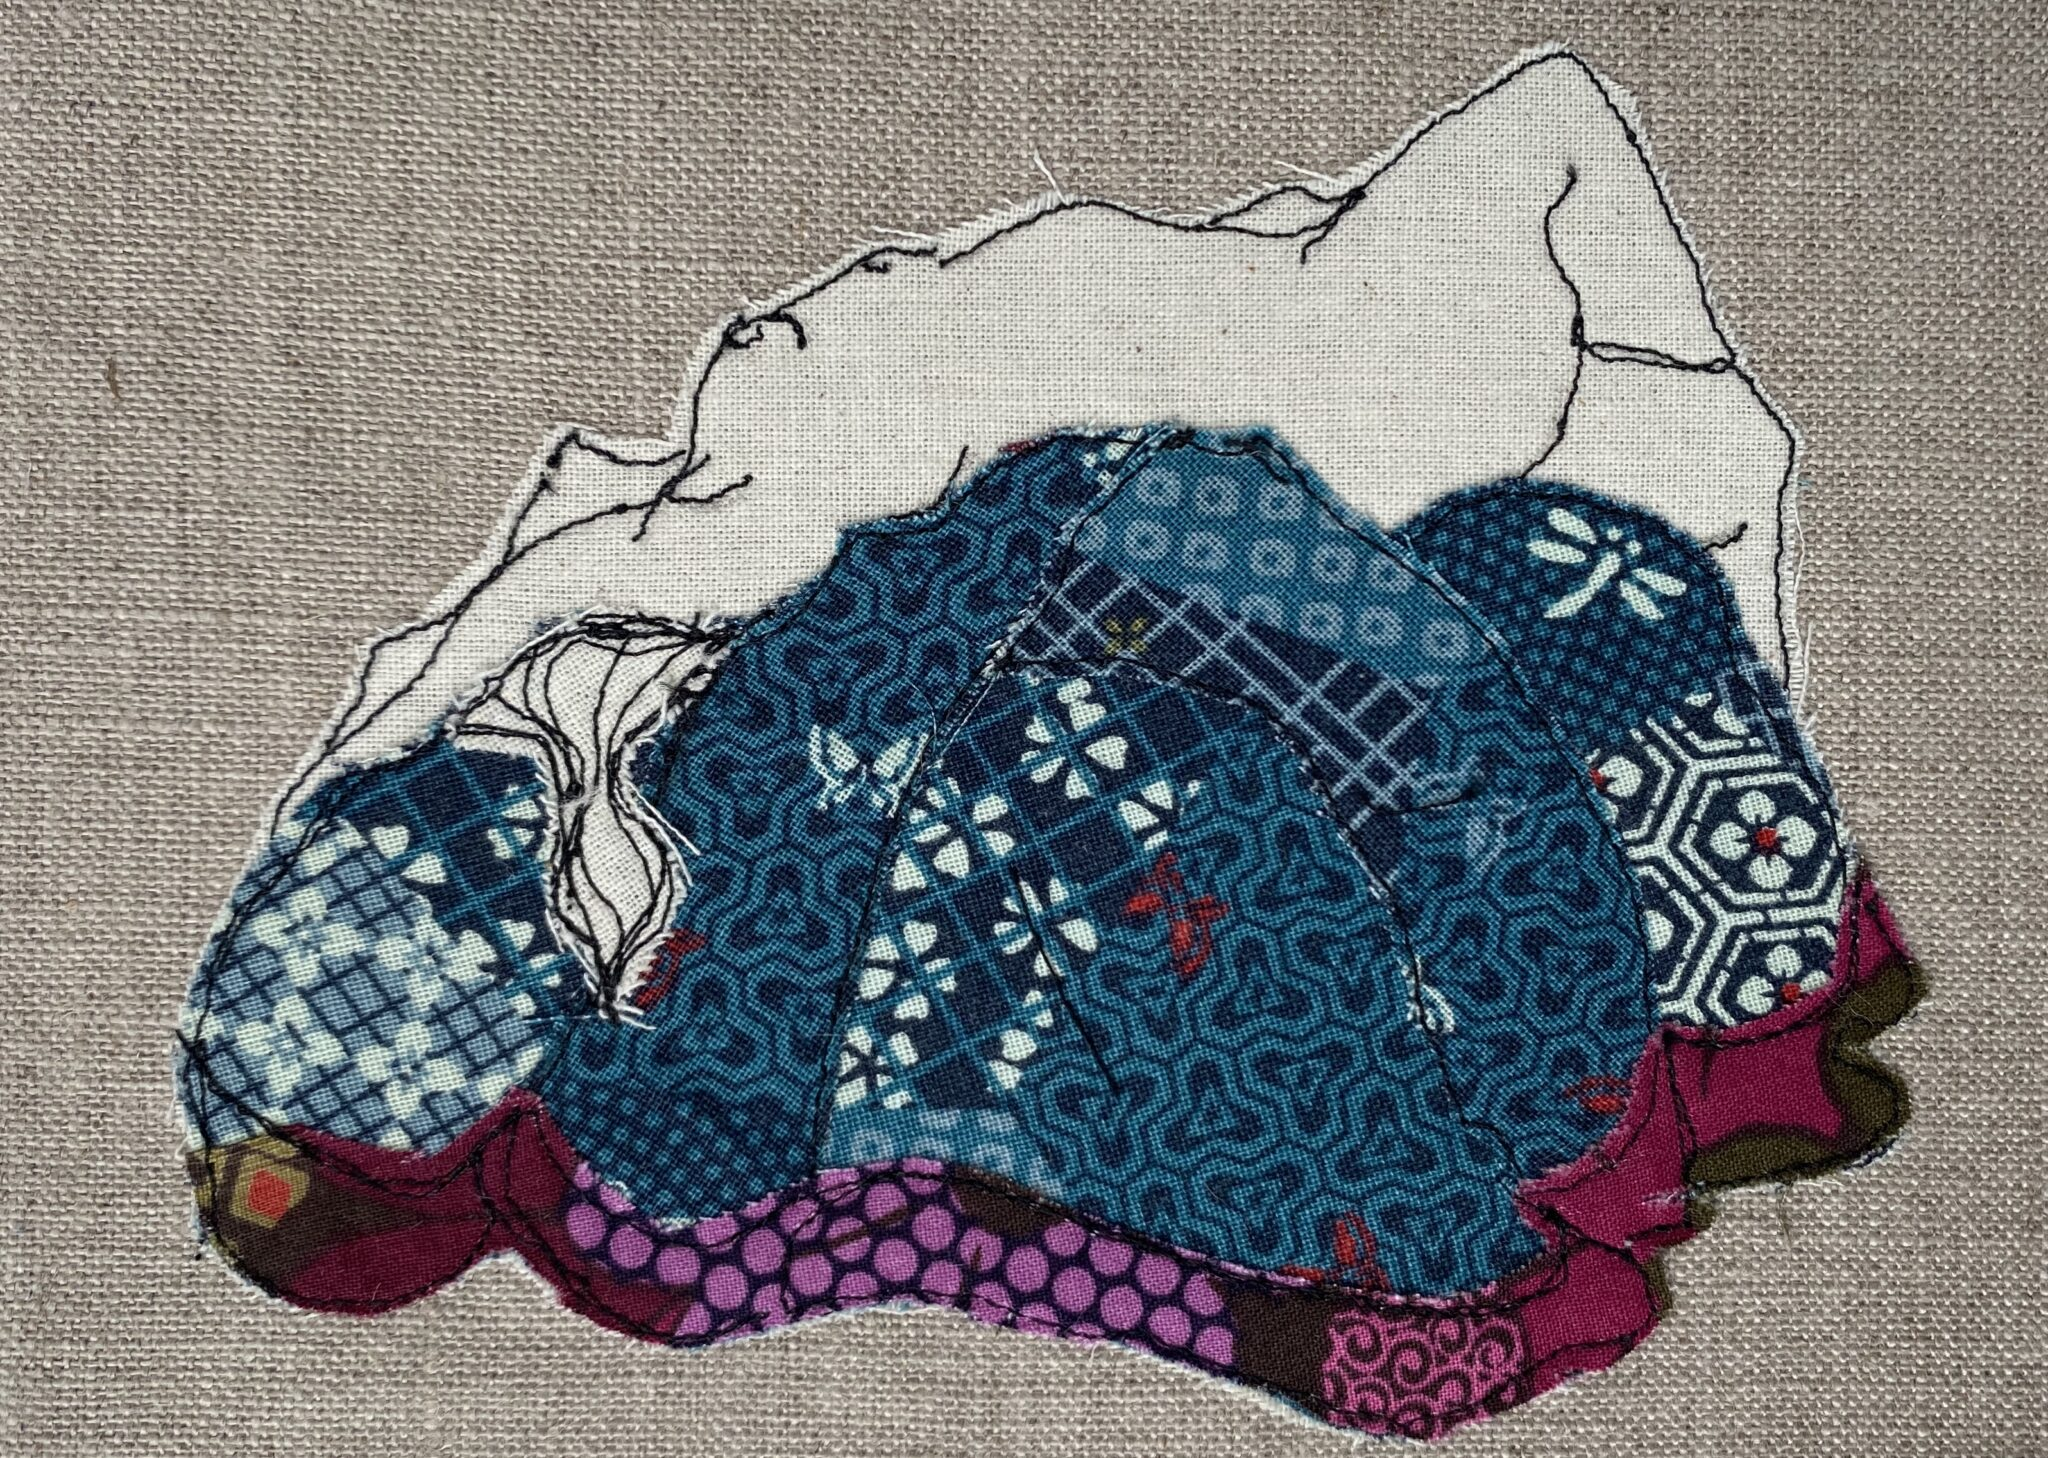 patchwork-passion-embroidered-textile-artwork-by-juliet-d-collins-by-julietdcollins